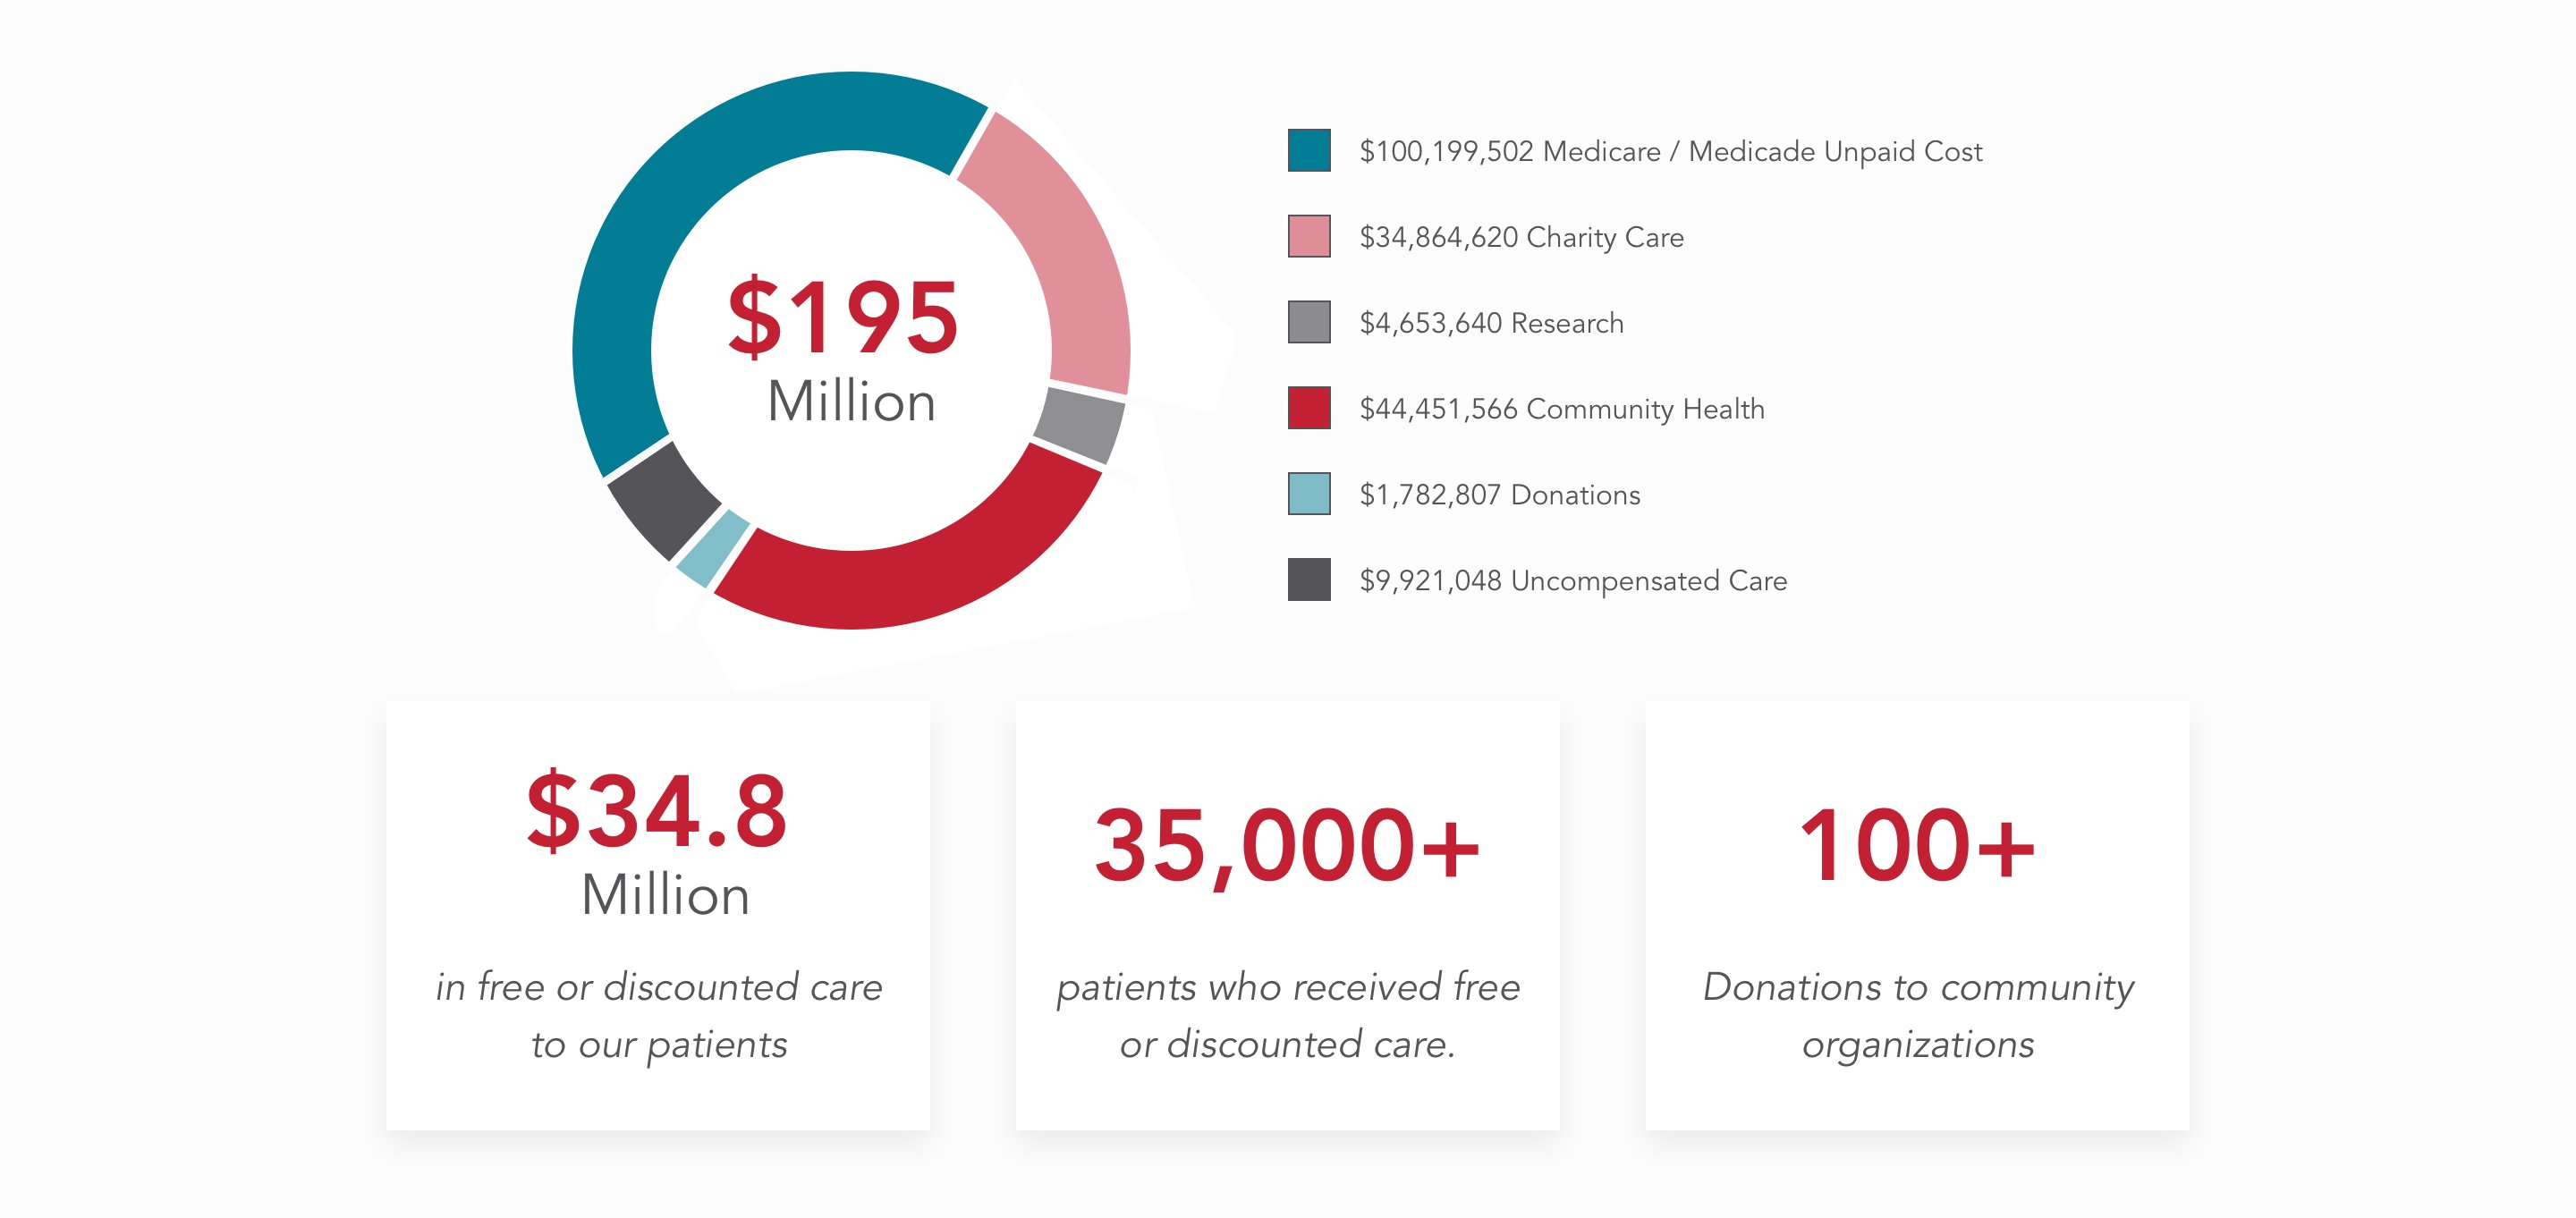 A Pie Chart Showing : Total: $195 million of which $100,199,502 for Medicare/Medicaid Unpaid Cost, $34,864,620 for Charity Care, $4,653,640 for Research, $9,921,048 for Uncompensated Care,  $1,782,807 for Donations., $44,451,566 for Community Health. A box highlighting